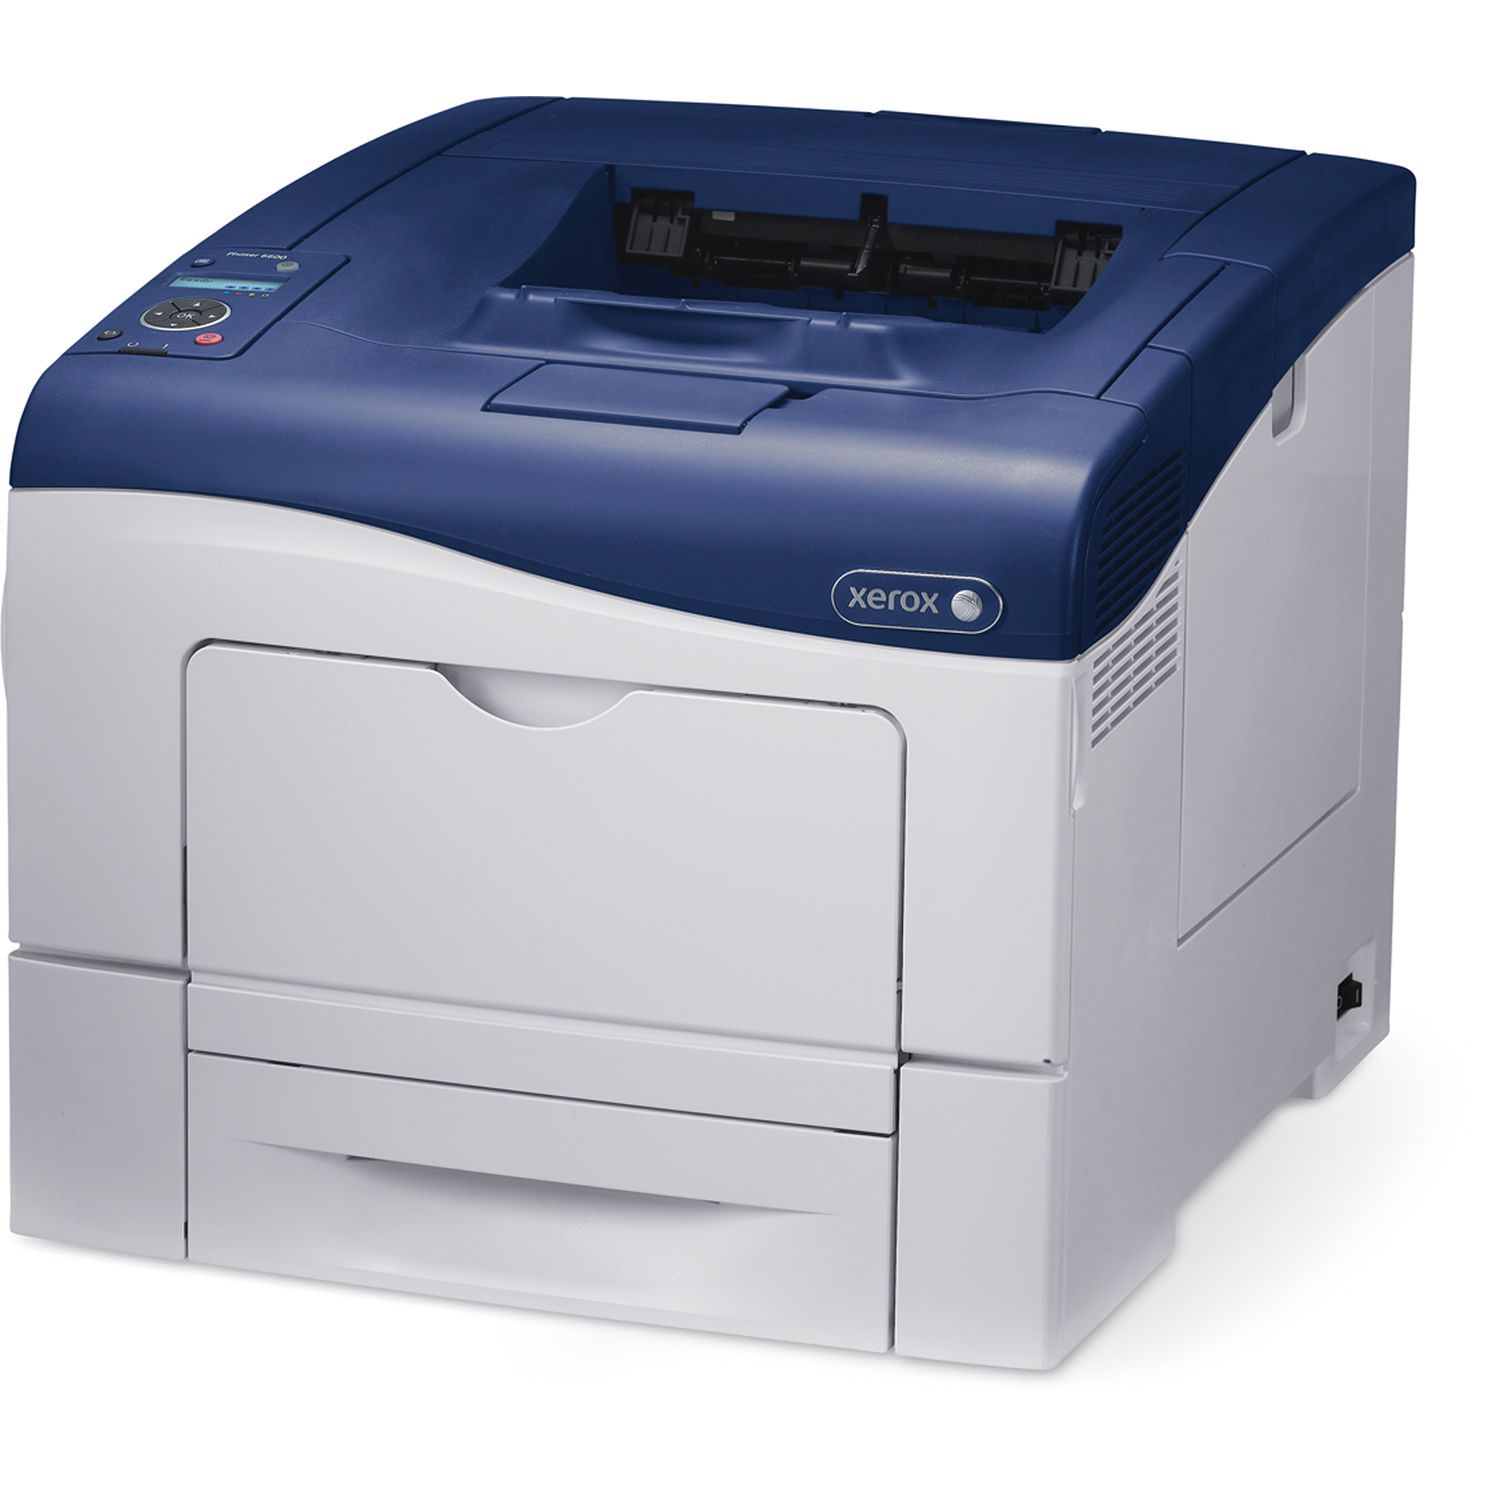 Xerox Help Number Uk 0800 046 5071 Laser Printer Printer